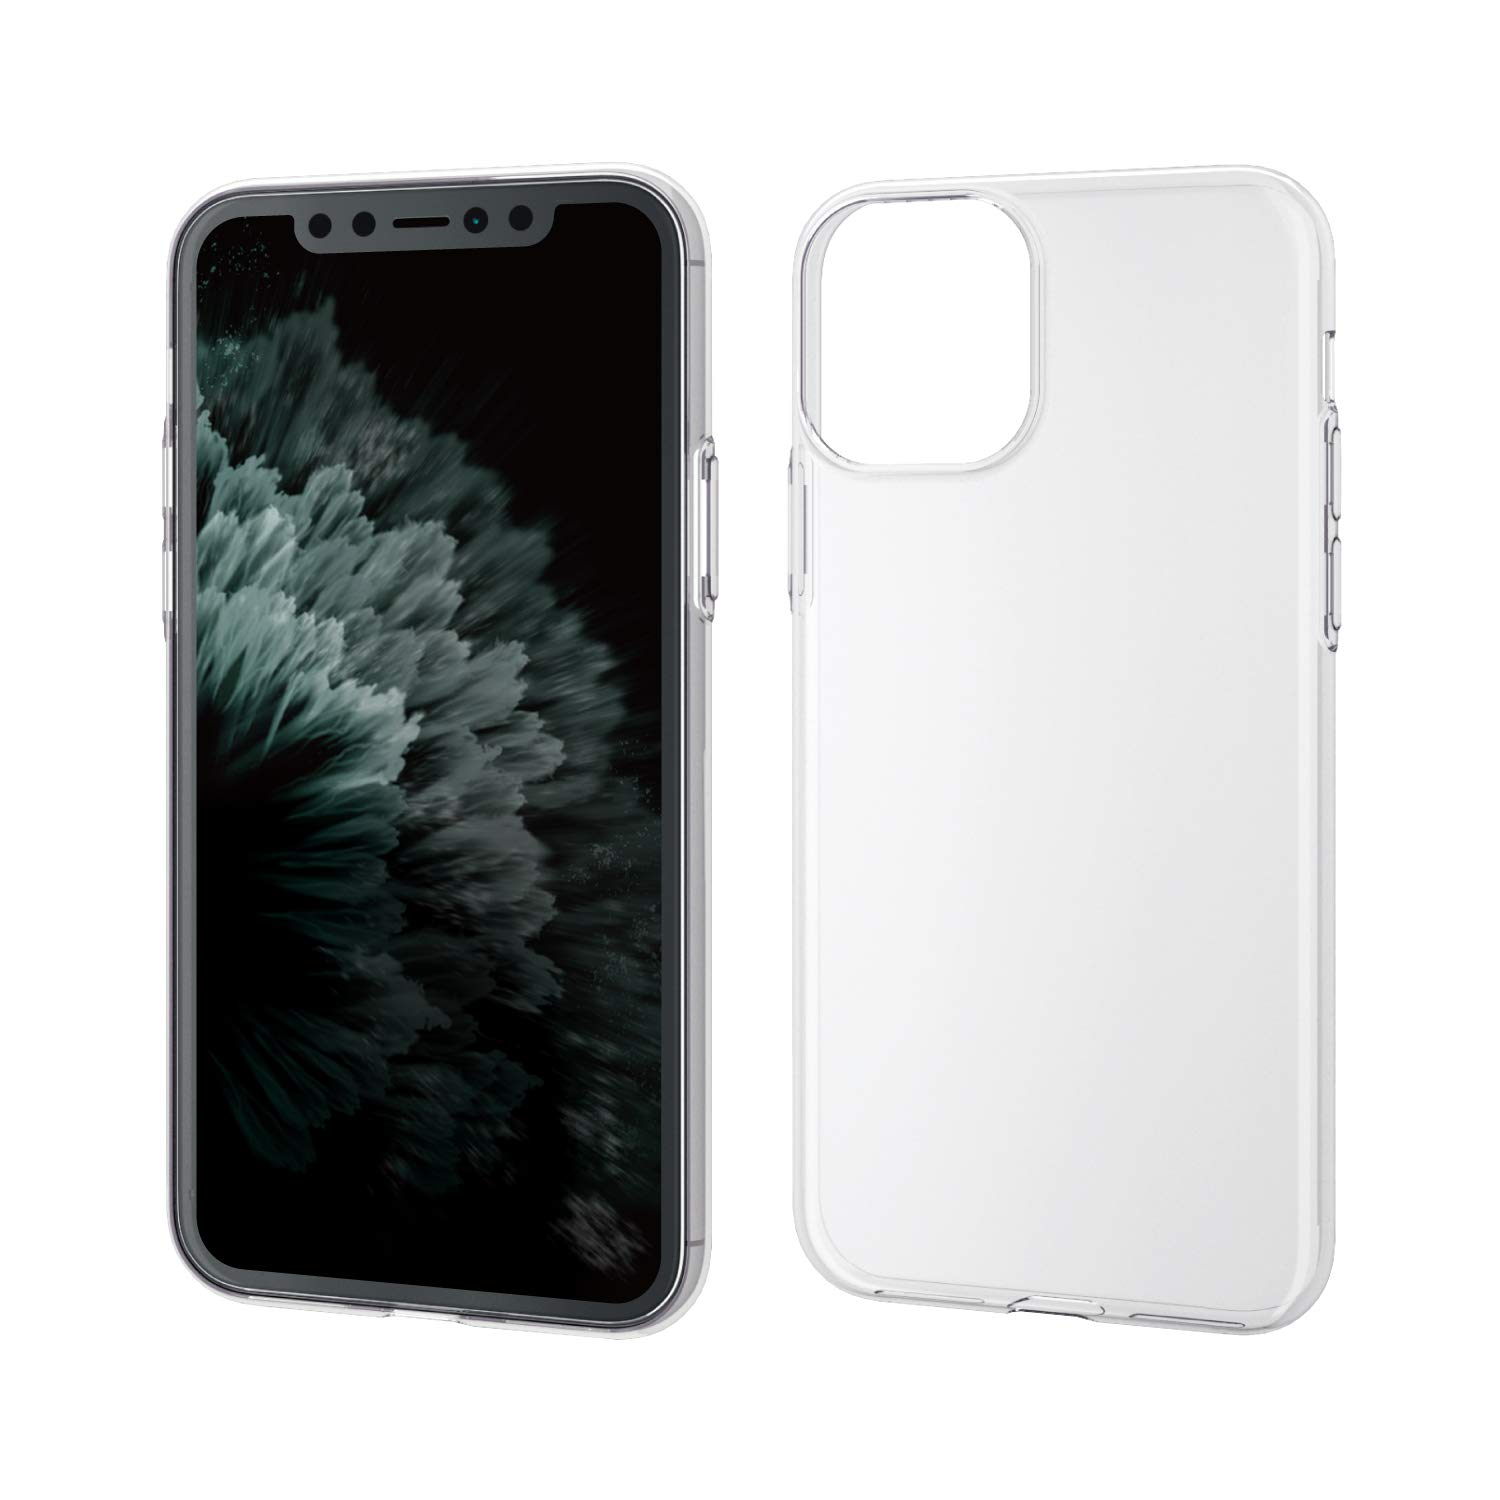 ELECOM ELECOM-Japan Brand-Smartphone Soft TPU Case Thin Type Compatible with iPhone 11 Pro Clear PM-A19BUCUCR